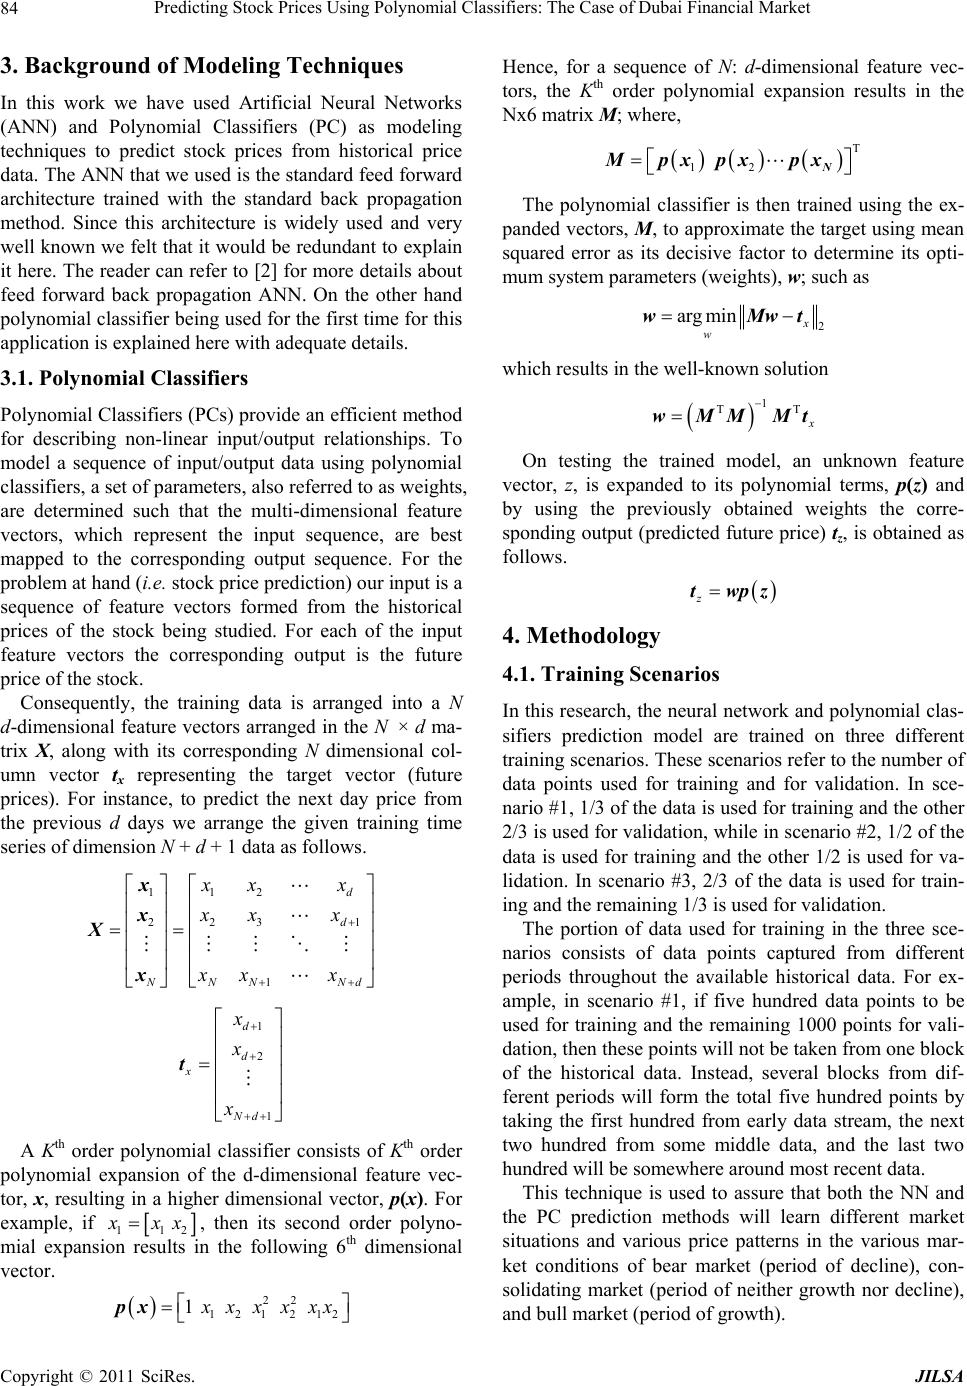 Predicting Stock Prices Using Polynomial Classifiers: The